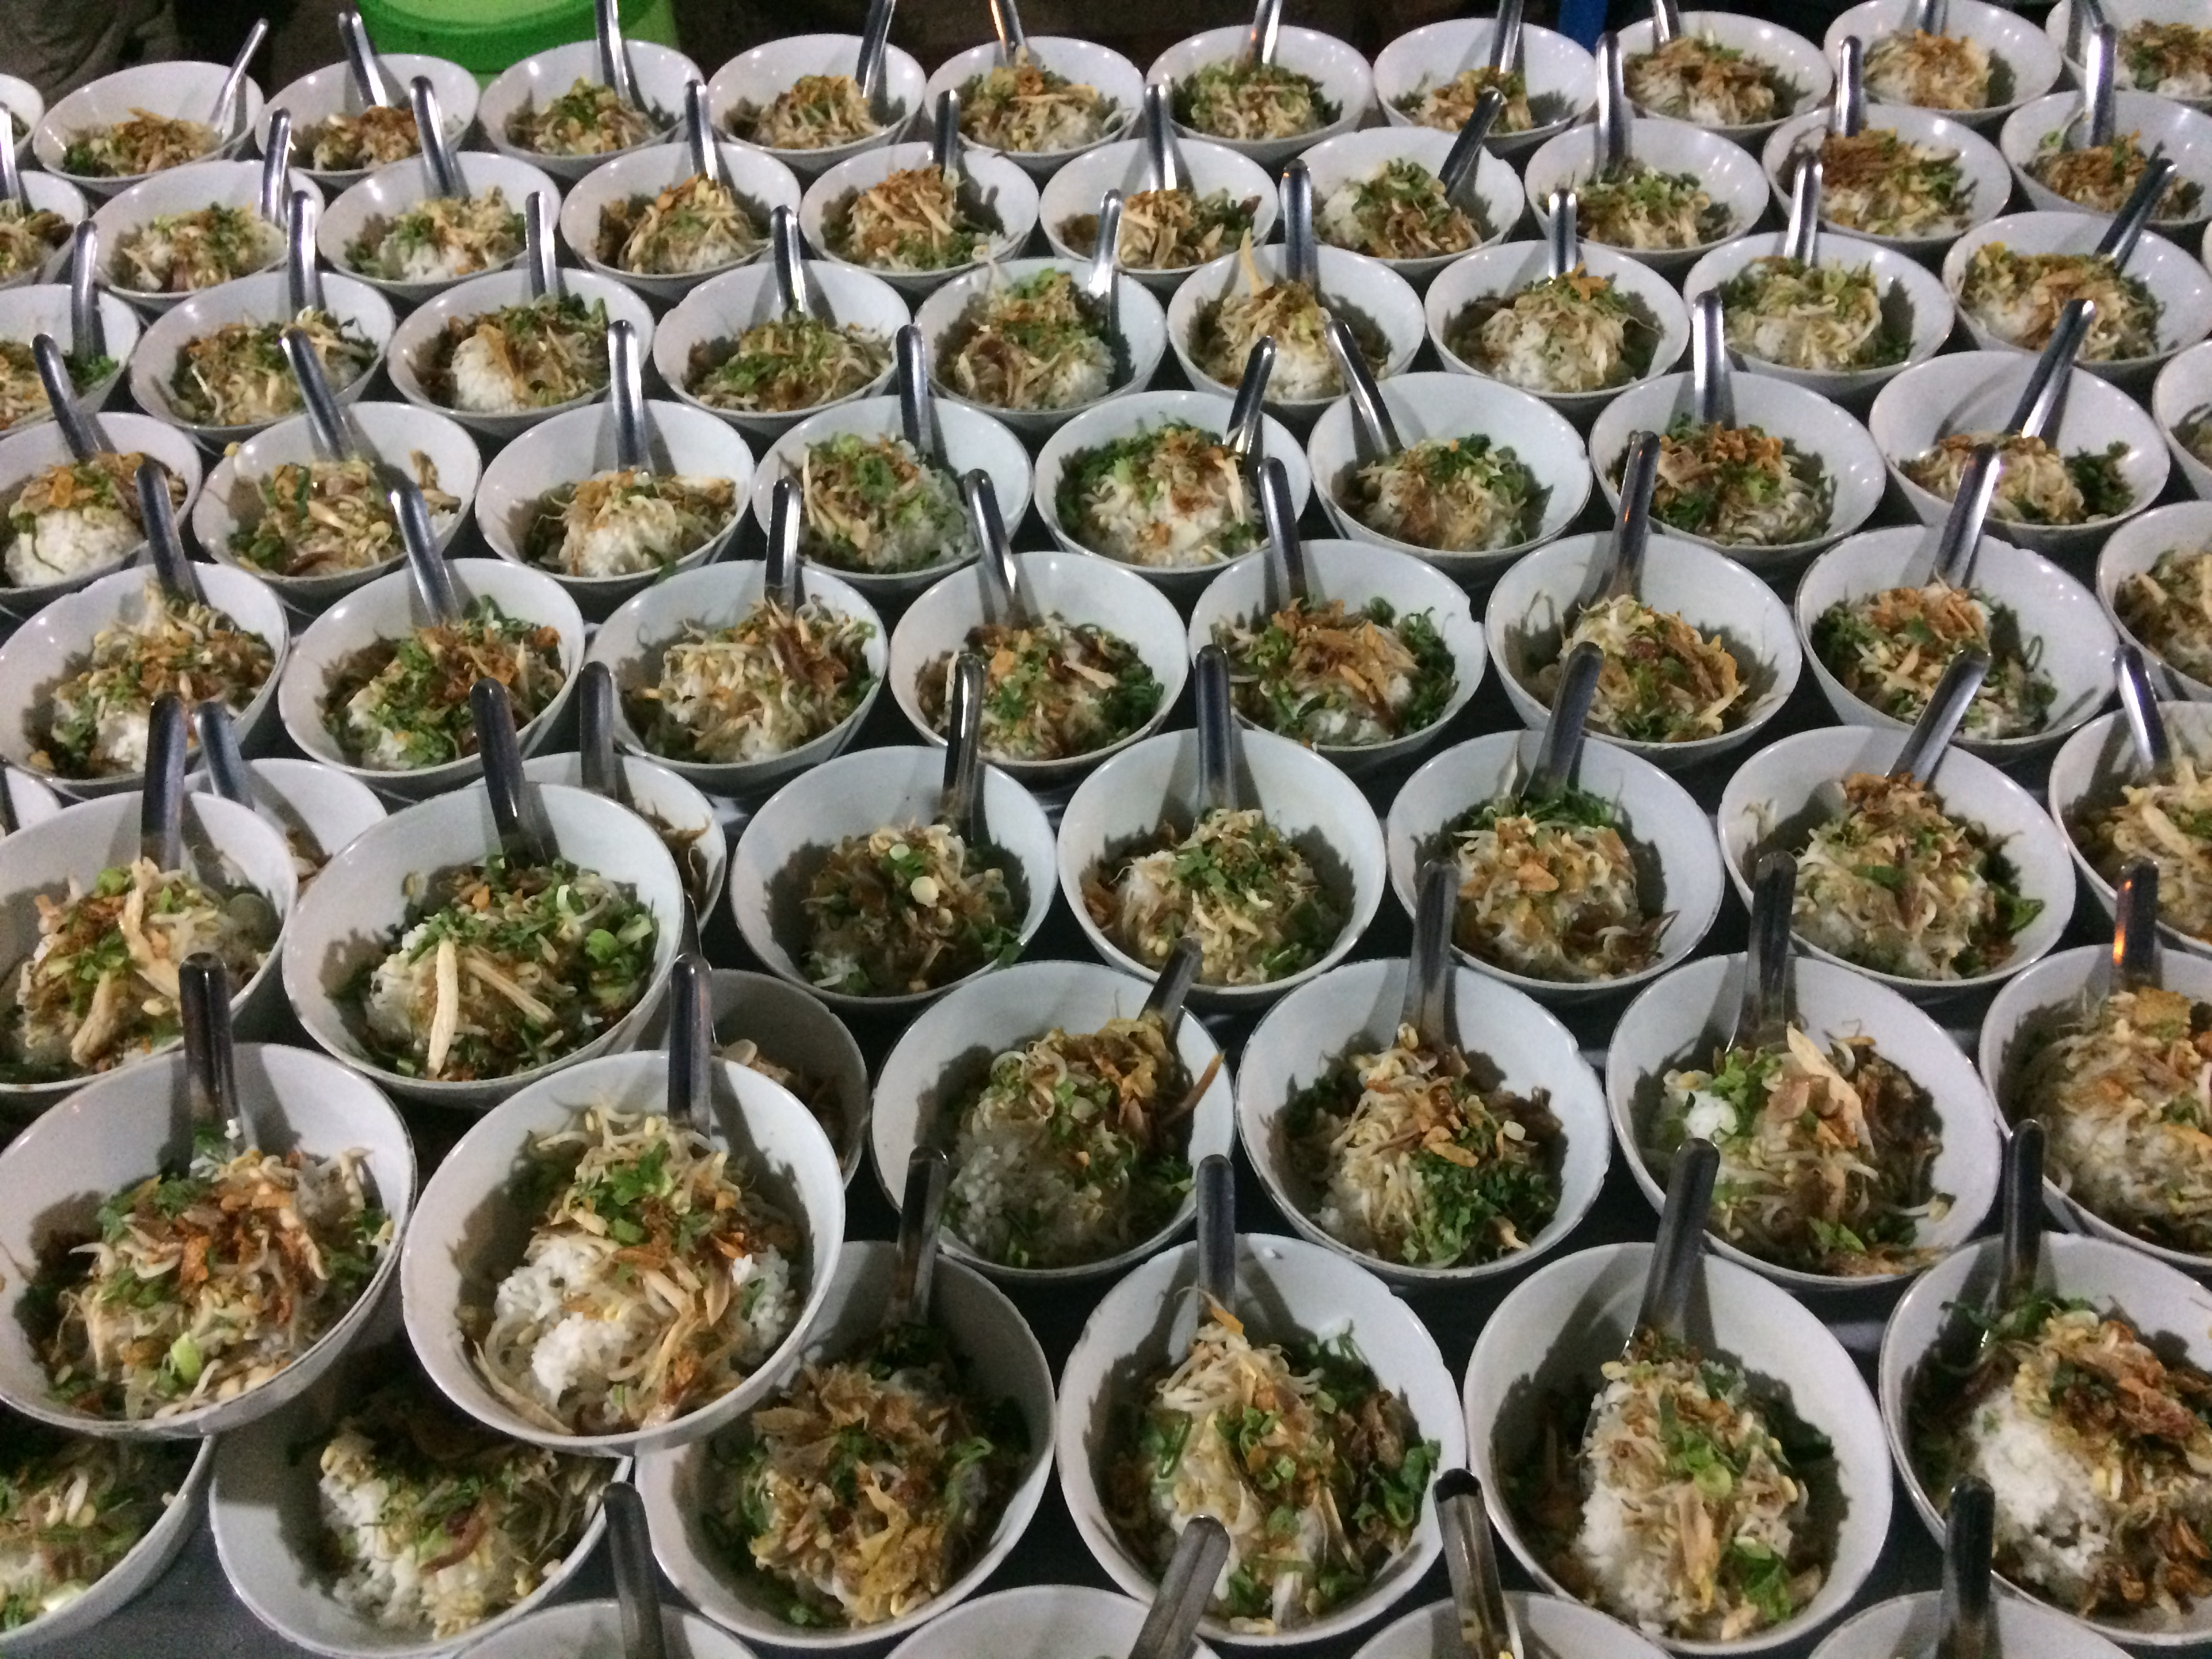 An infinite supply of Soto.